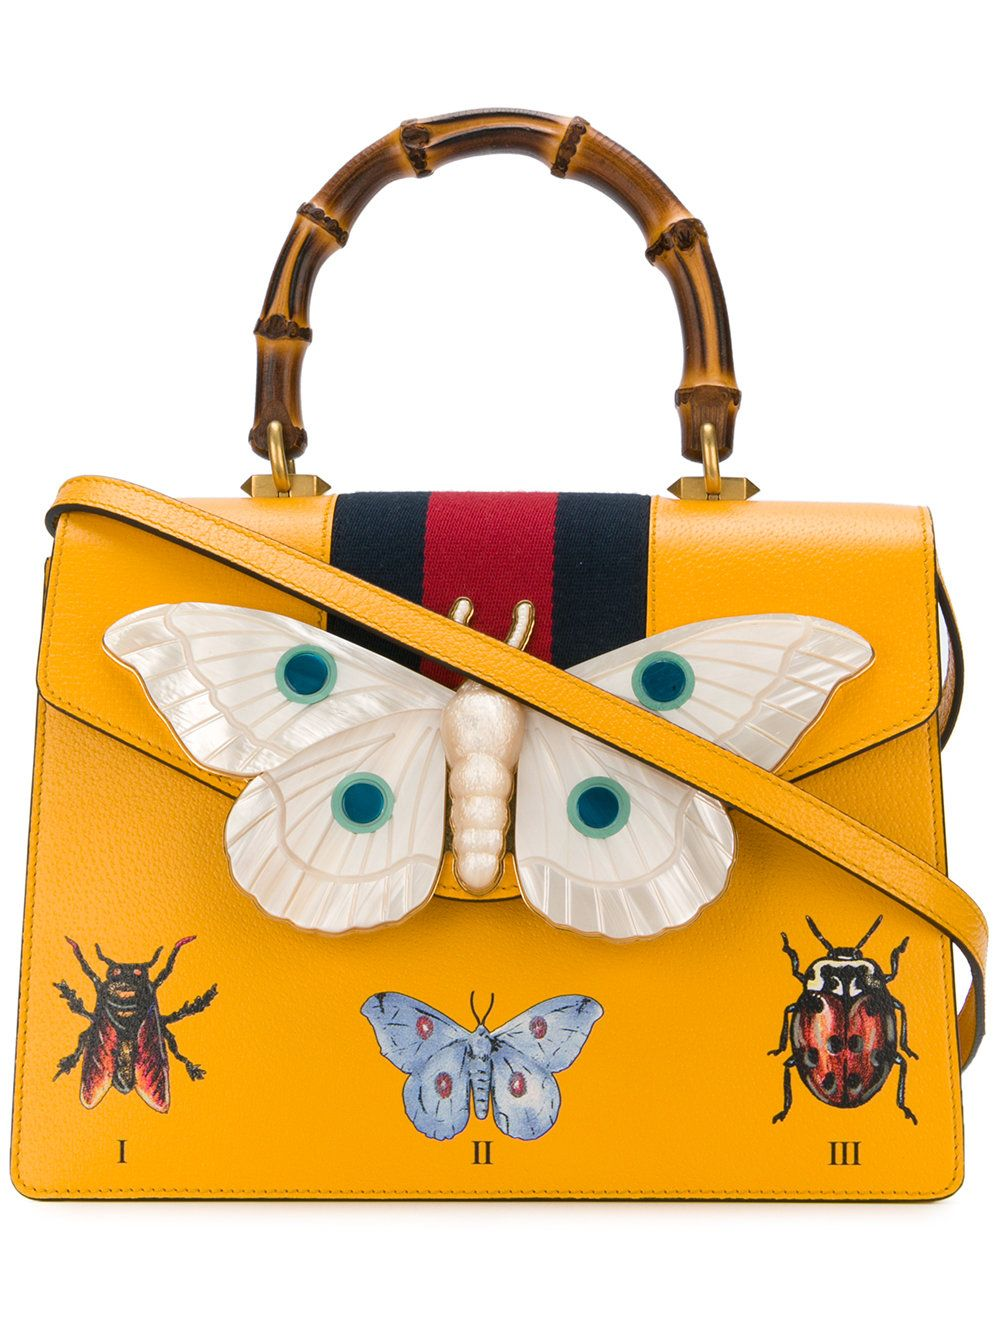 23ea3a1fc Gucci top handle tote bag with moth | Fashion/Style in 2019 | Gucci ...